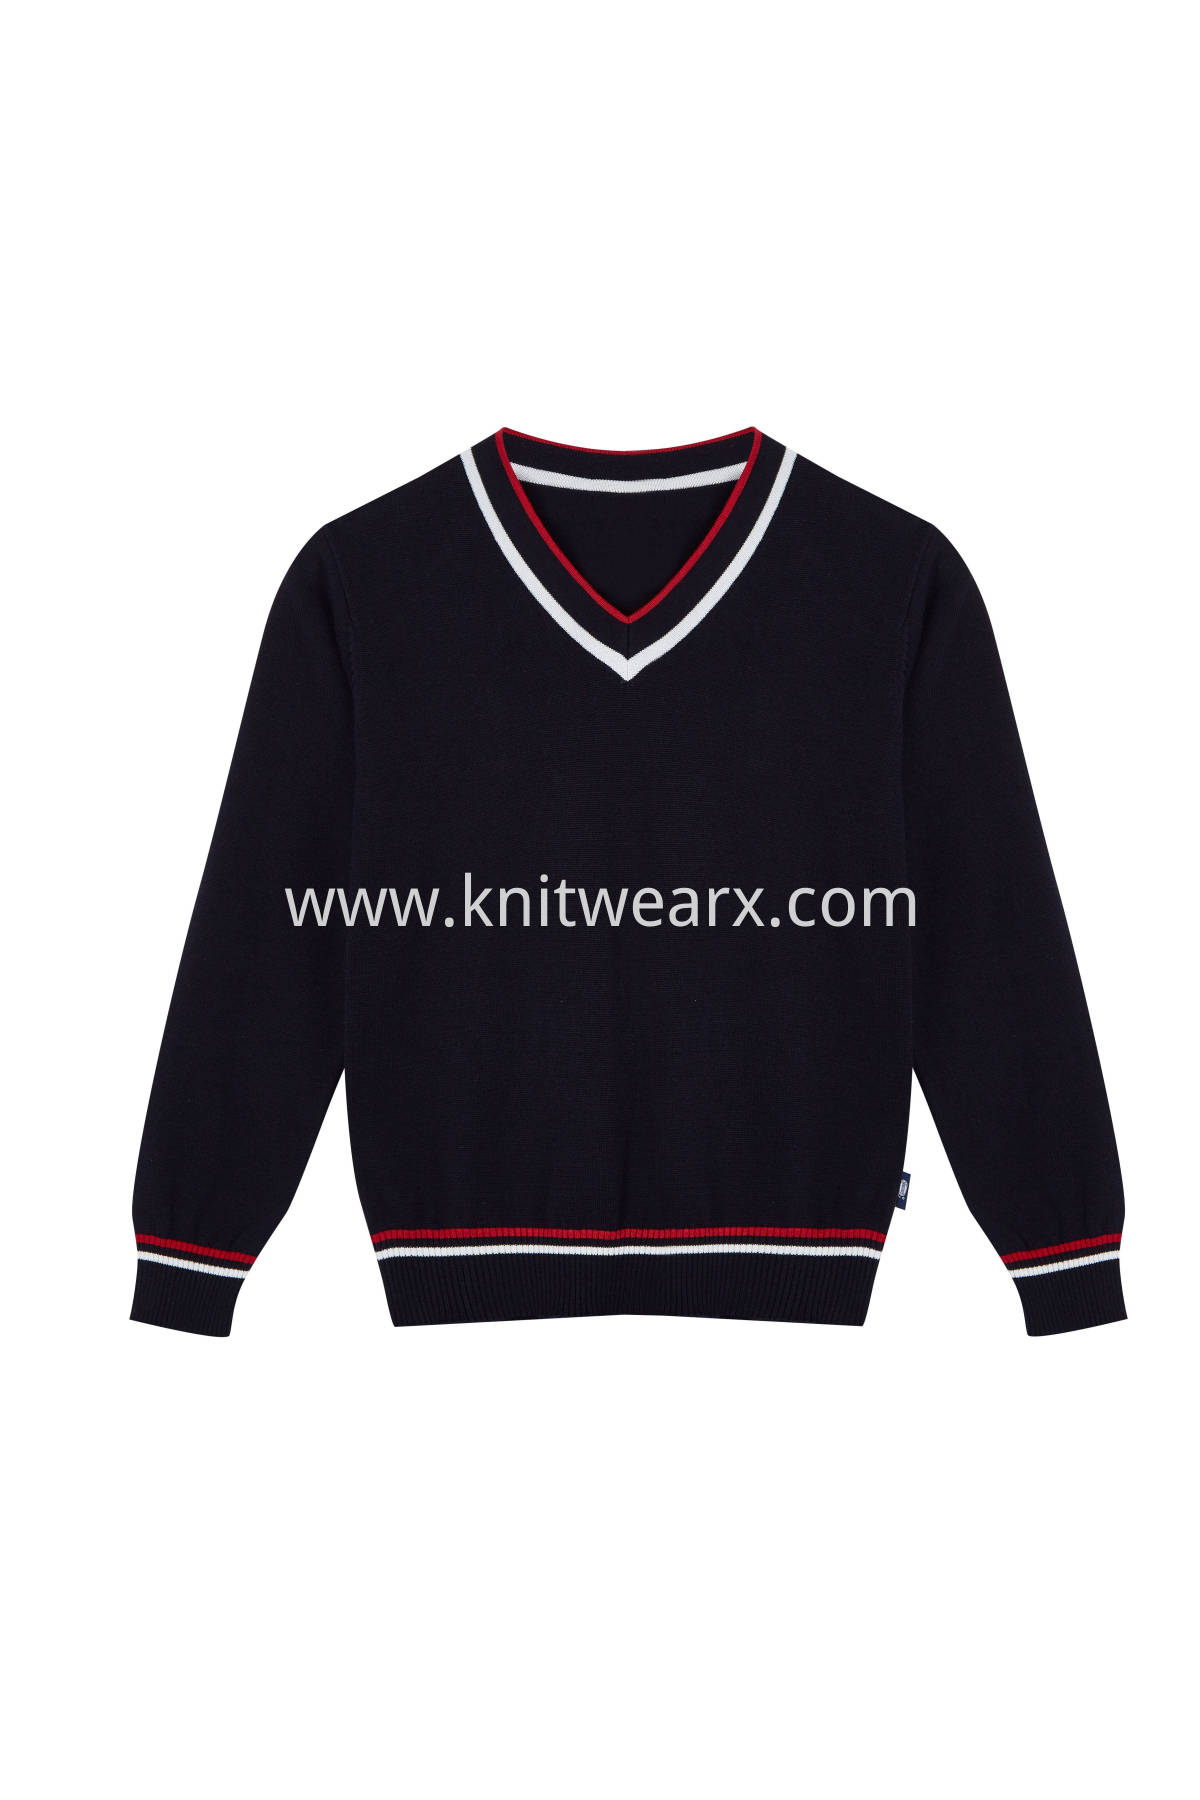 Kids's Sweater Vest Cotton V-Neck School Uniform Pullover Top